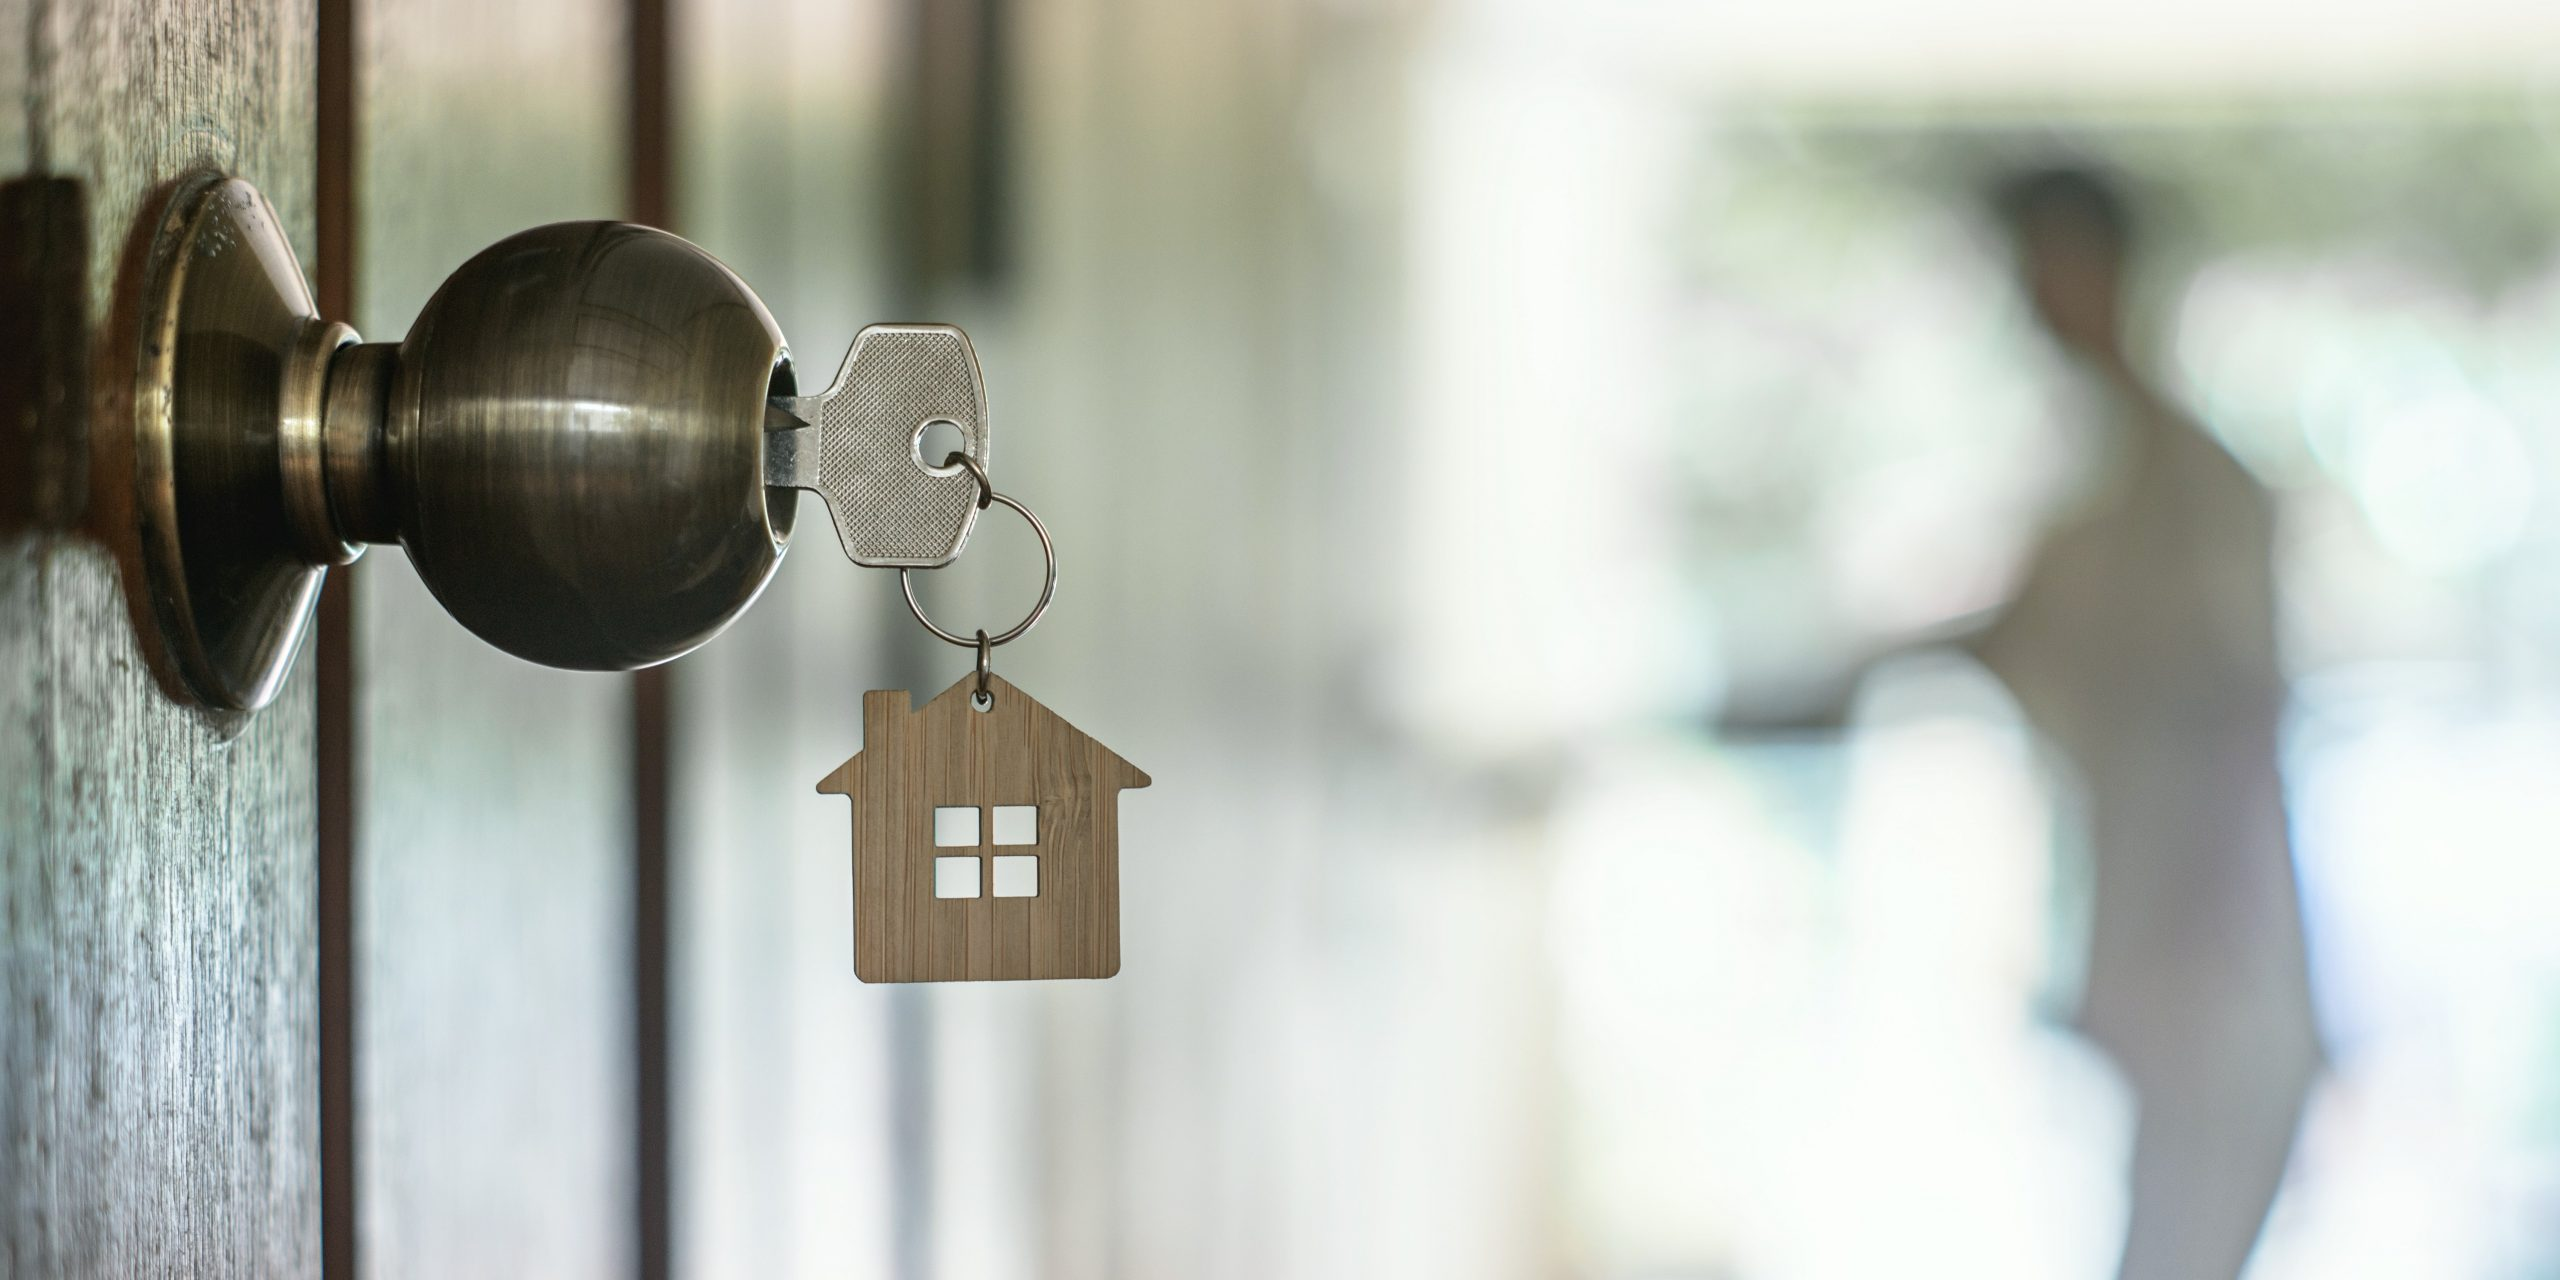 Keys to a home with a house-shaped keychain